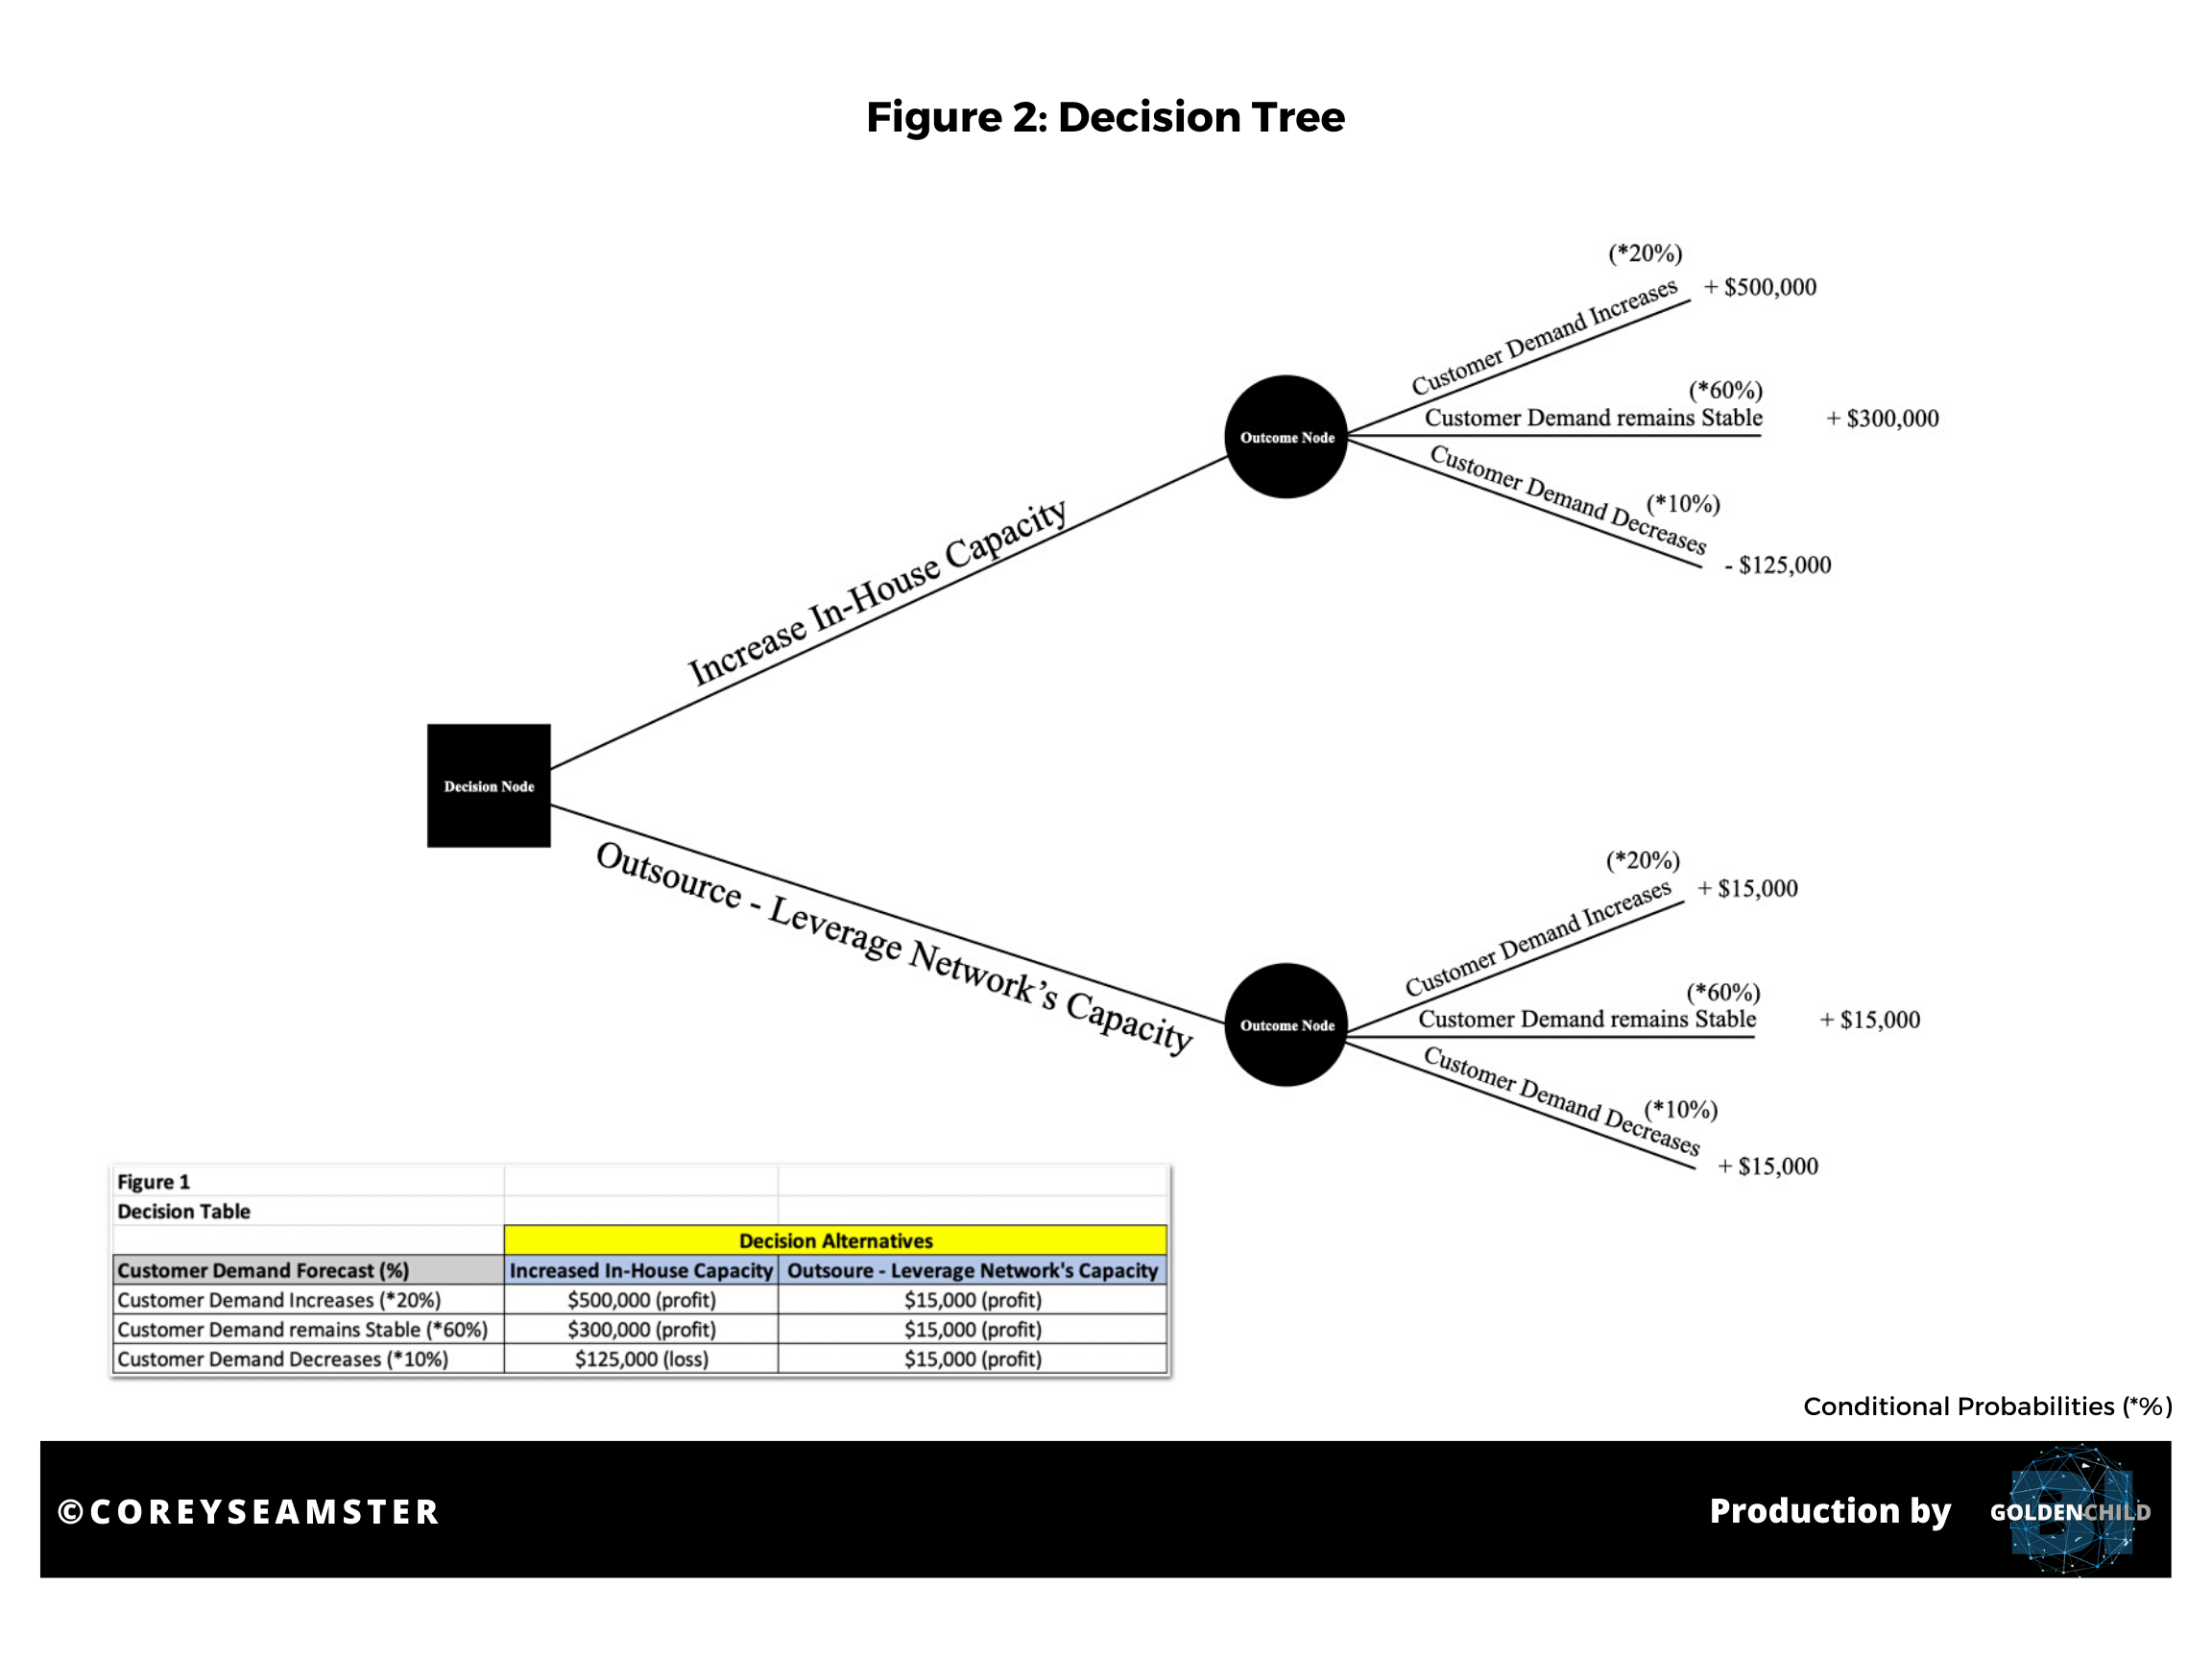 Source: Corey Seamster (2020) | Image: Sample 3DR Decision Table & Tree